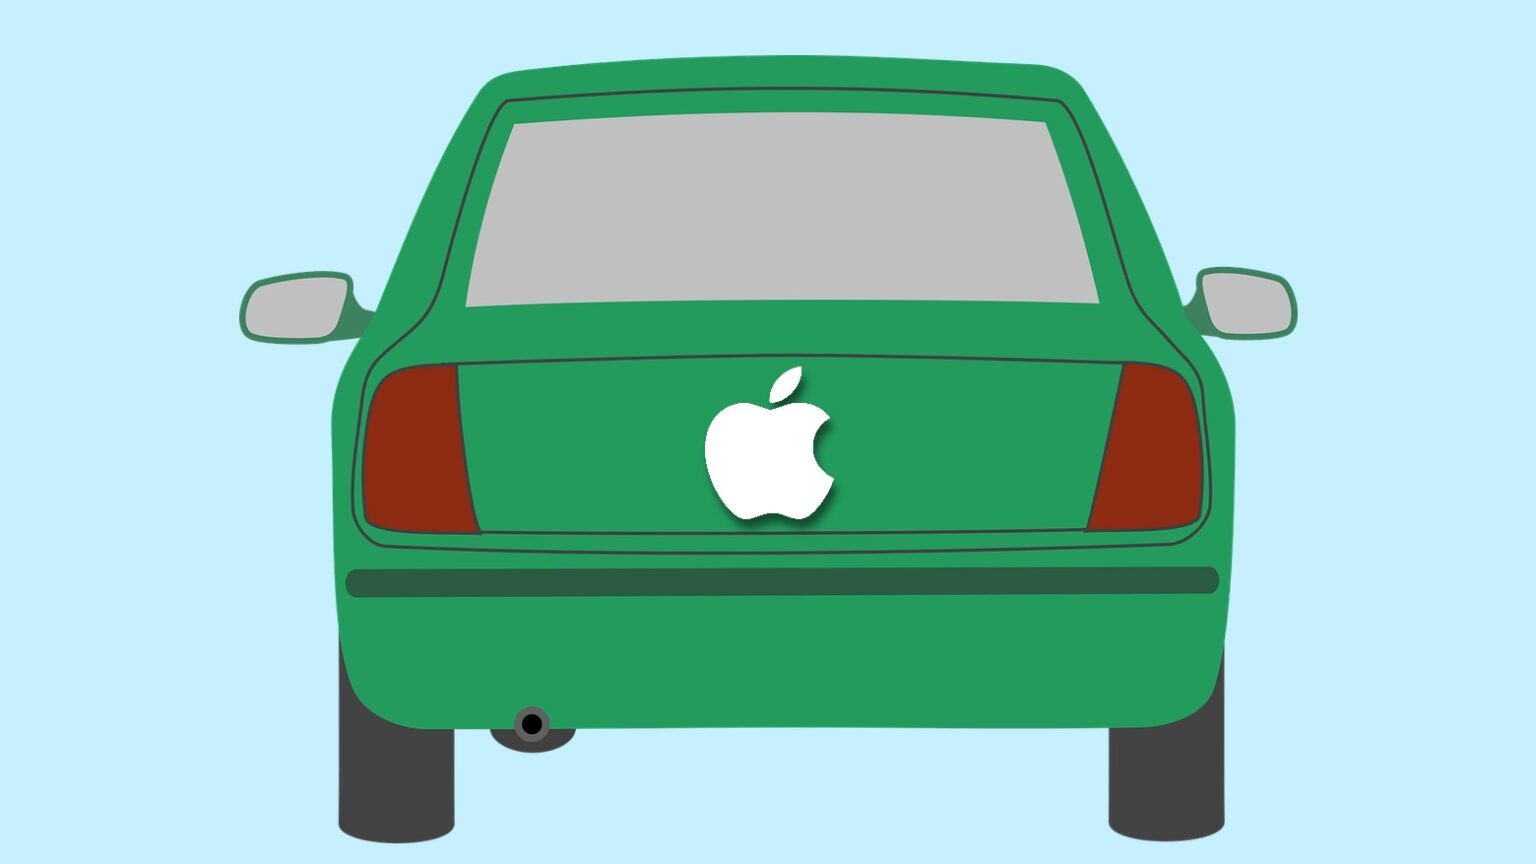 An Apple Car is supposedly in development, though it probably won't look anything like this.